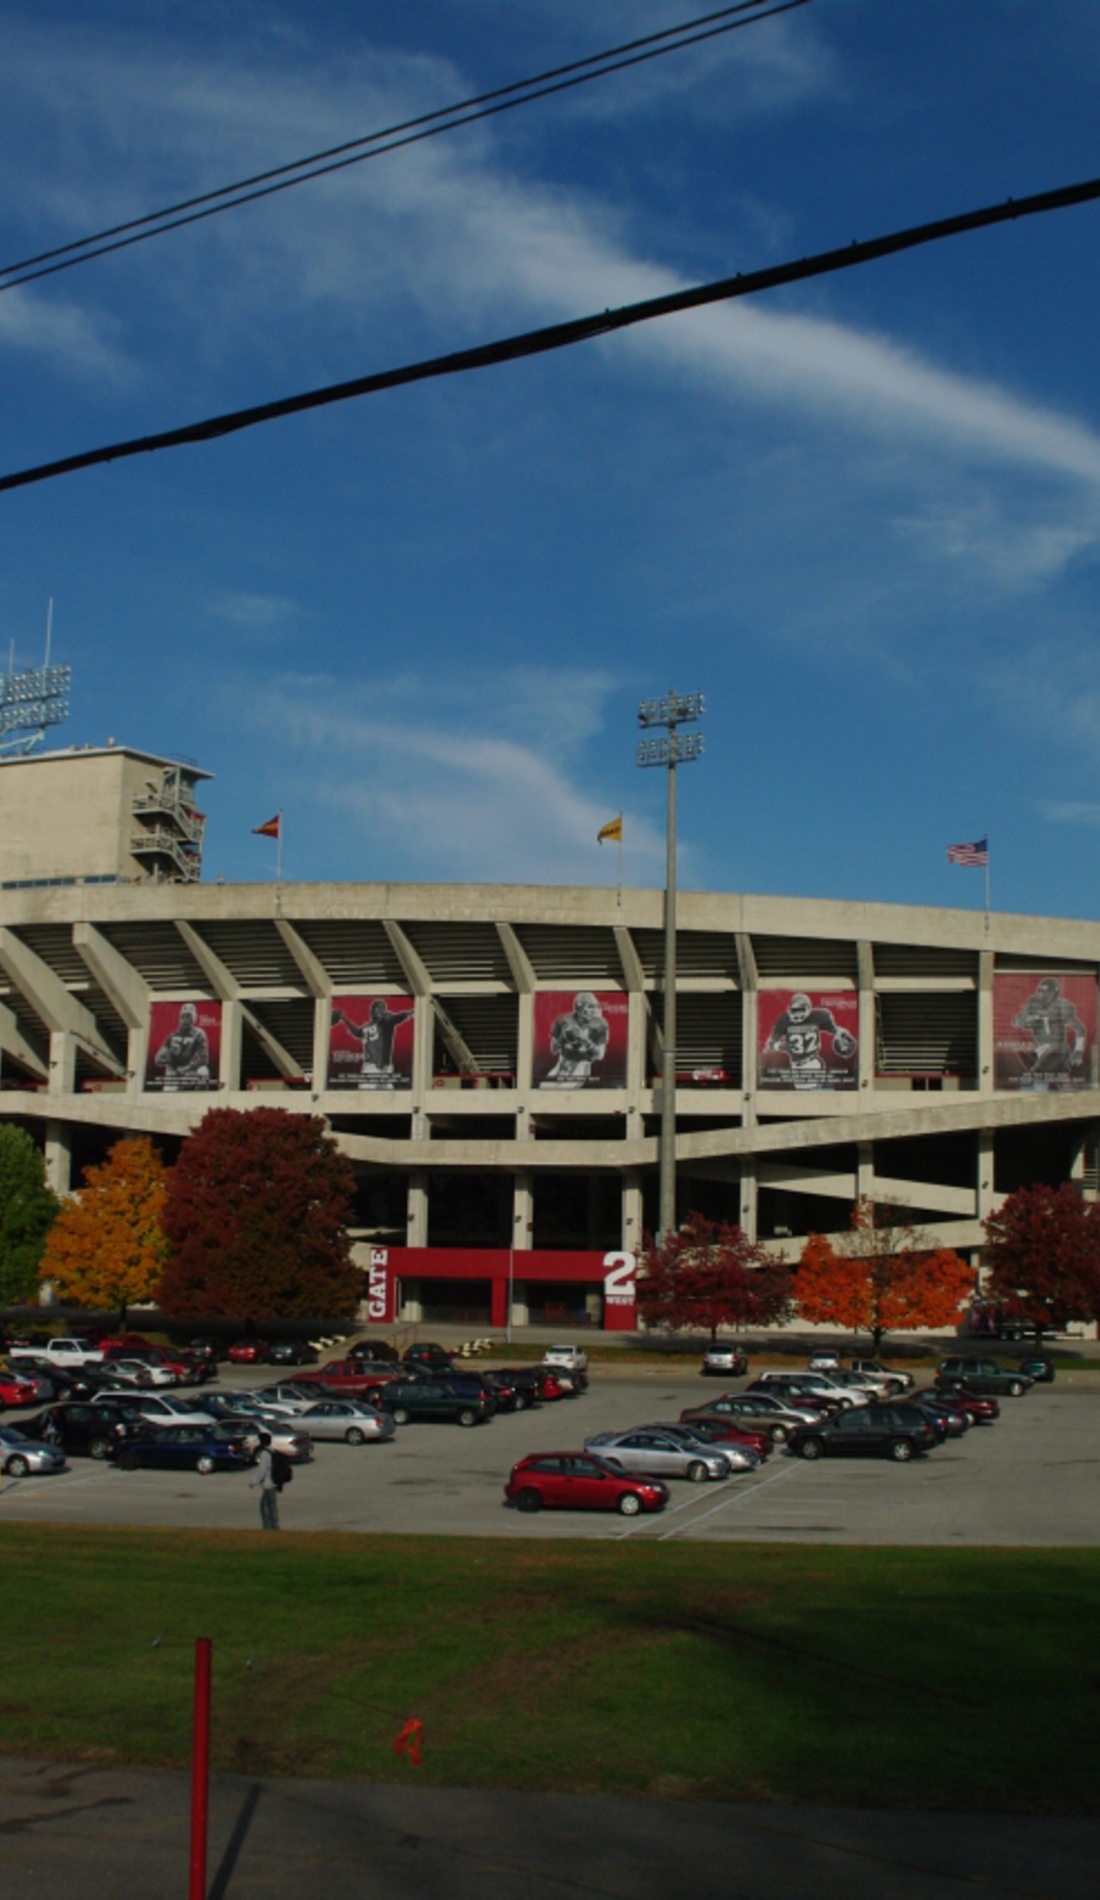 A Indiana Hoosiers Football live event